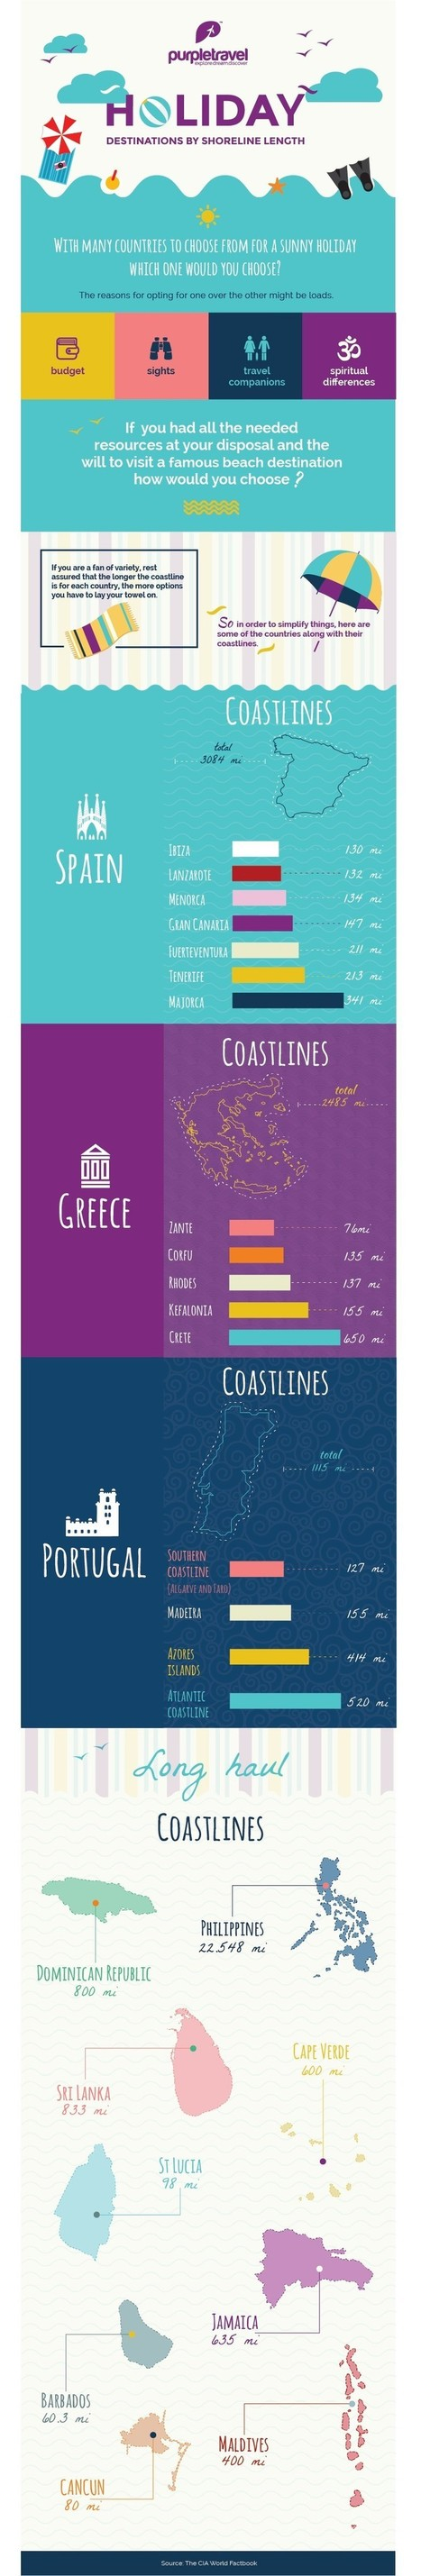 Miles and smiles on the beach: Destinations by shoreline length | All Infographics | Scoop.it